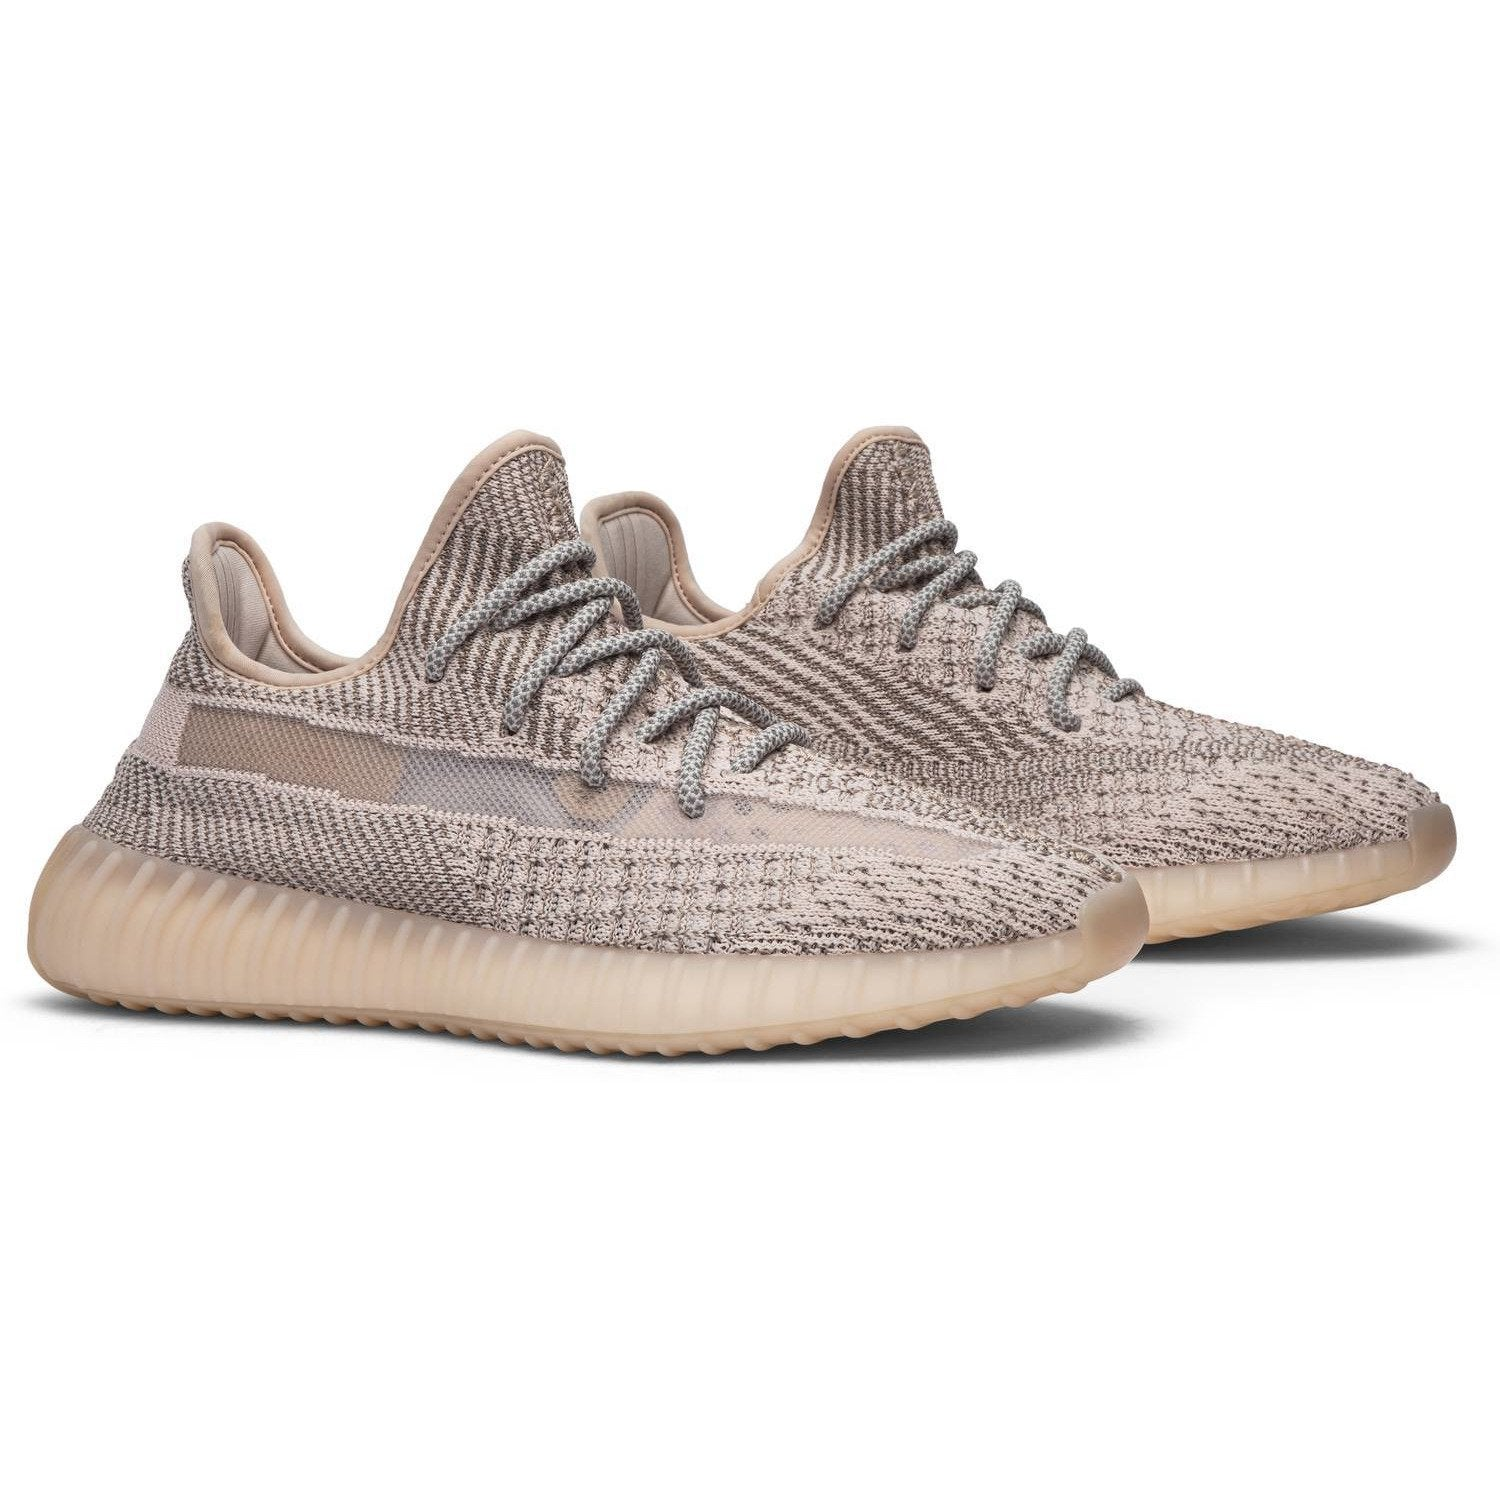 adidas Yeezy Boost 350 V2 'Synth Reflective' - After Burn